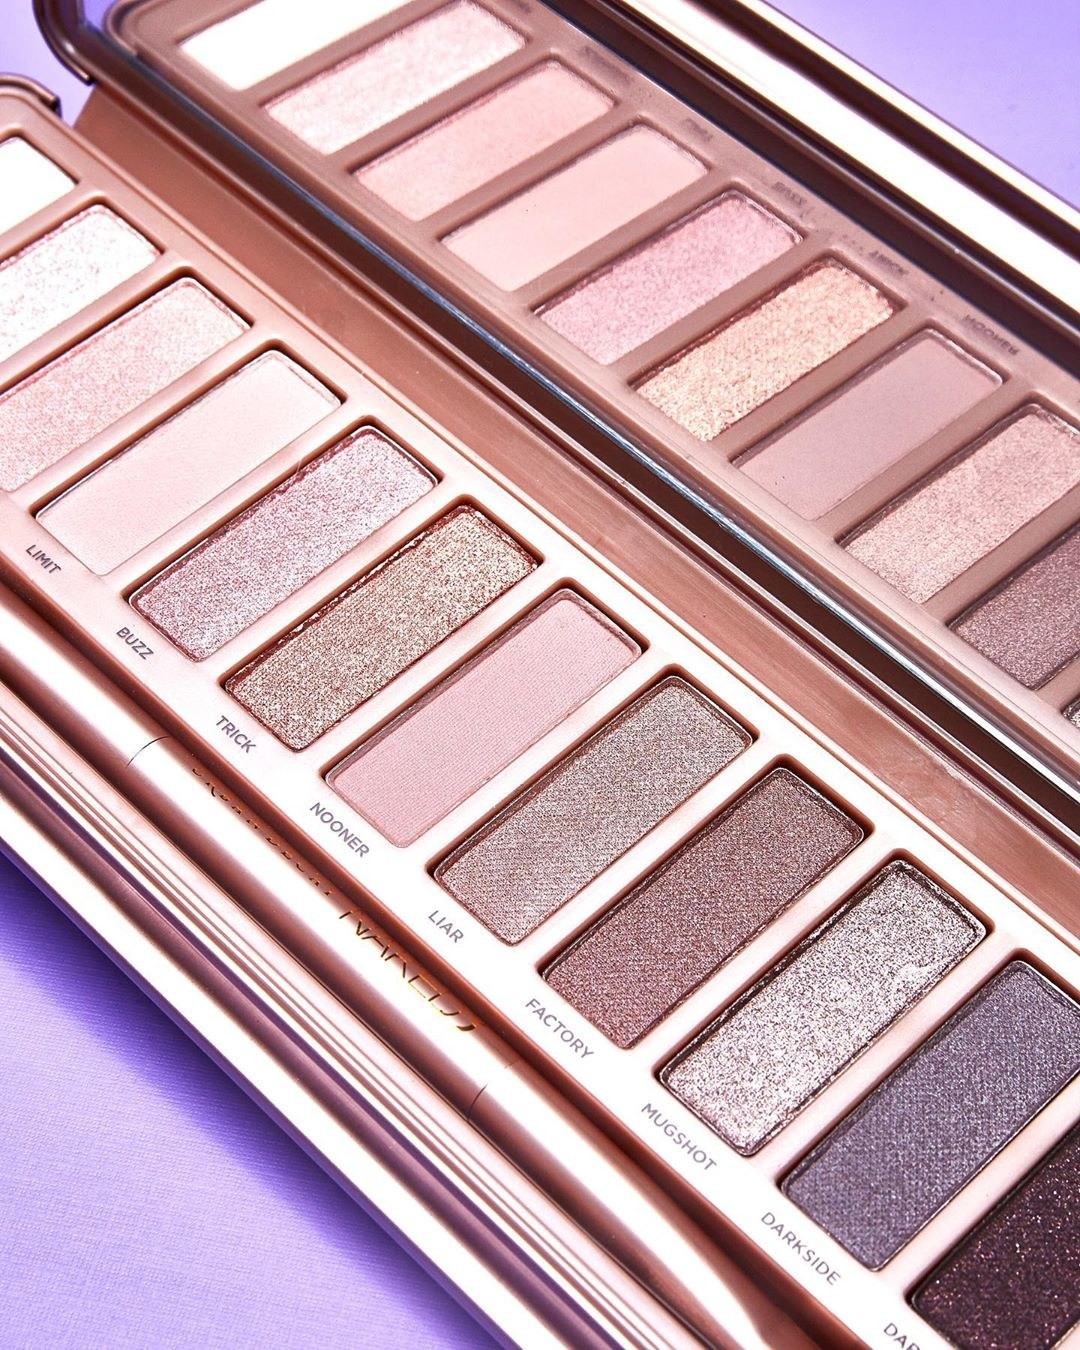 A close up of the eyeshadow pans in the palette